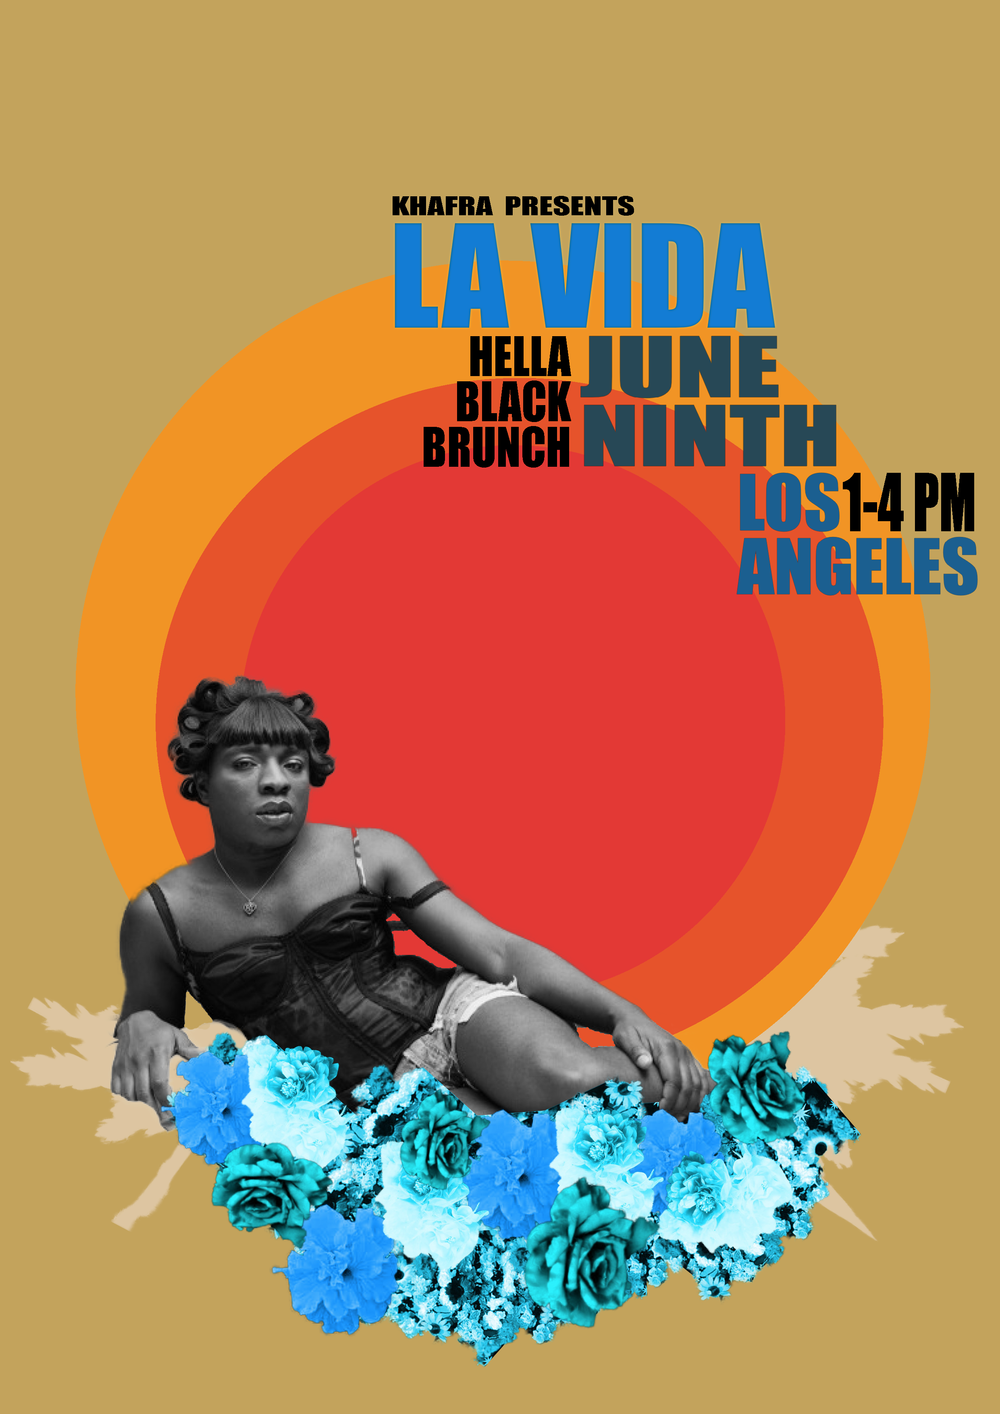 hella black brunch la vida